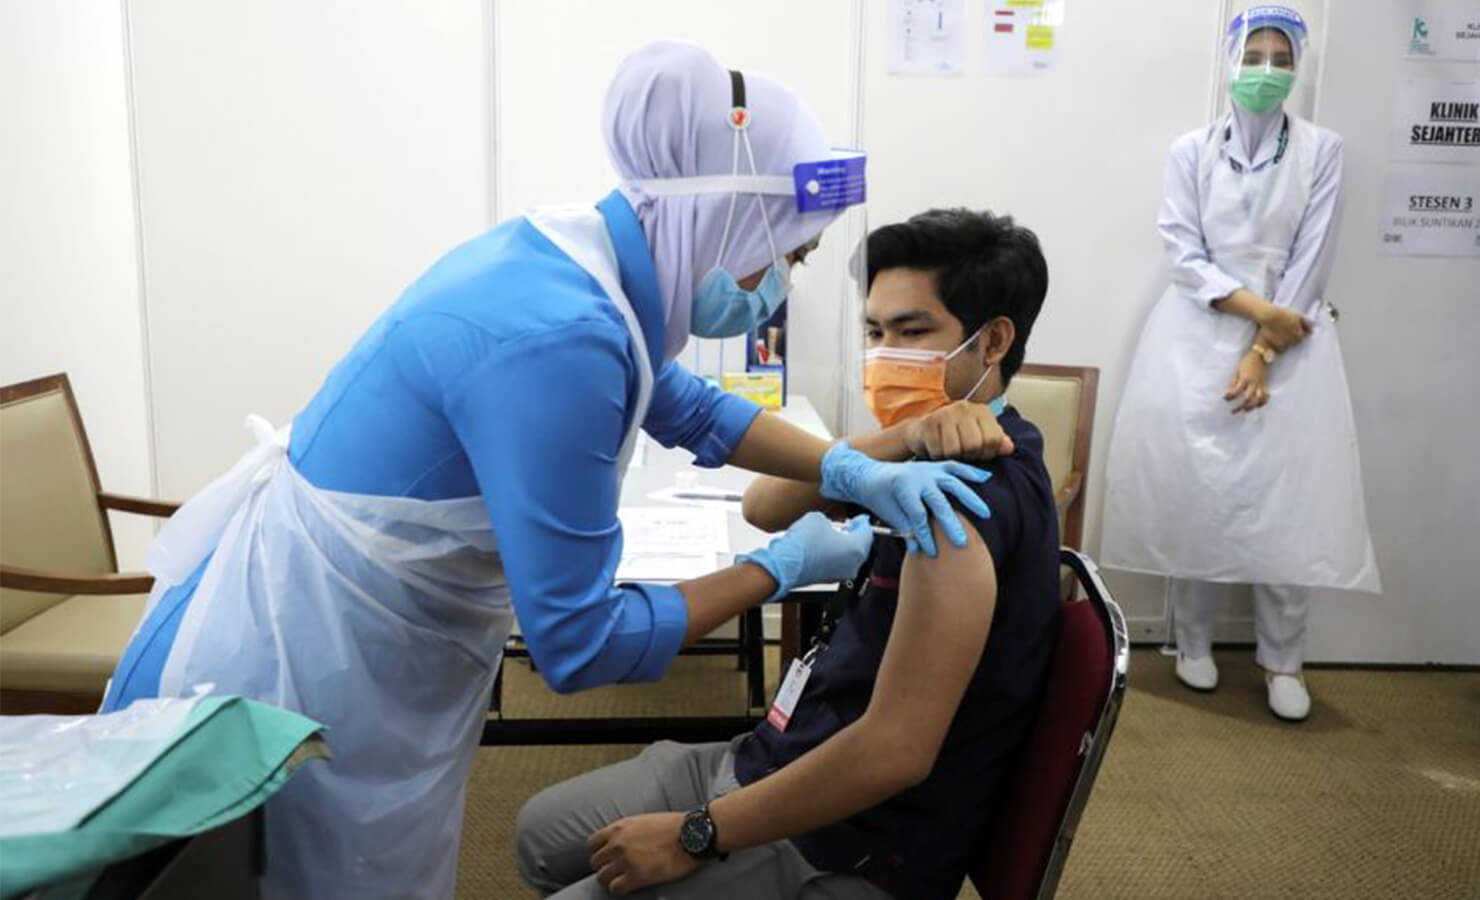 bloomthis-malaysian-things-you-didnt-know-2021-04-vaccination